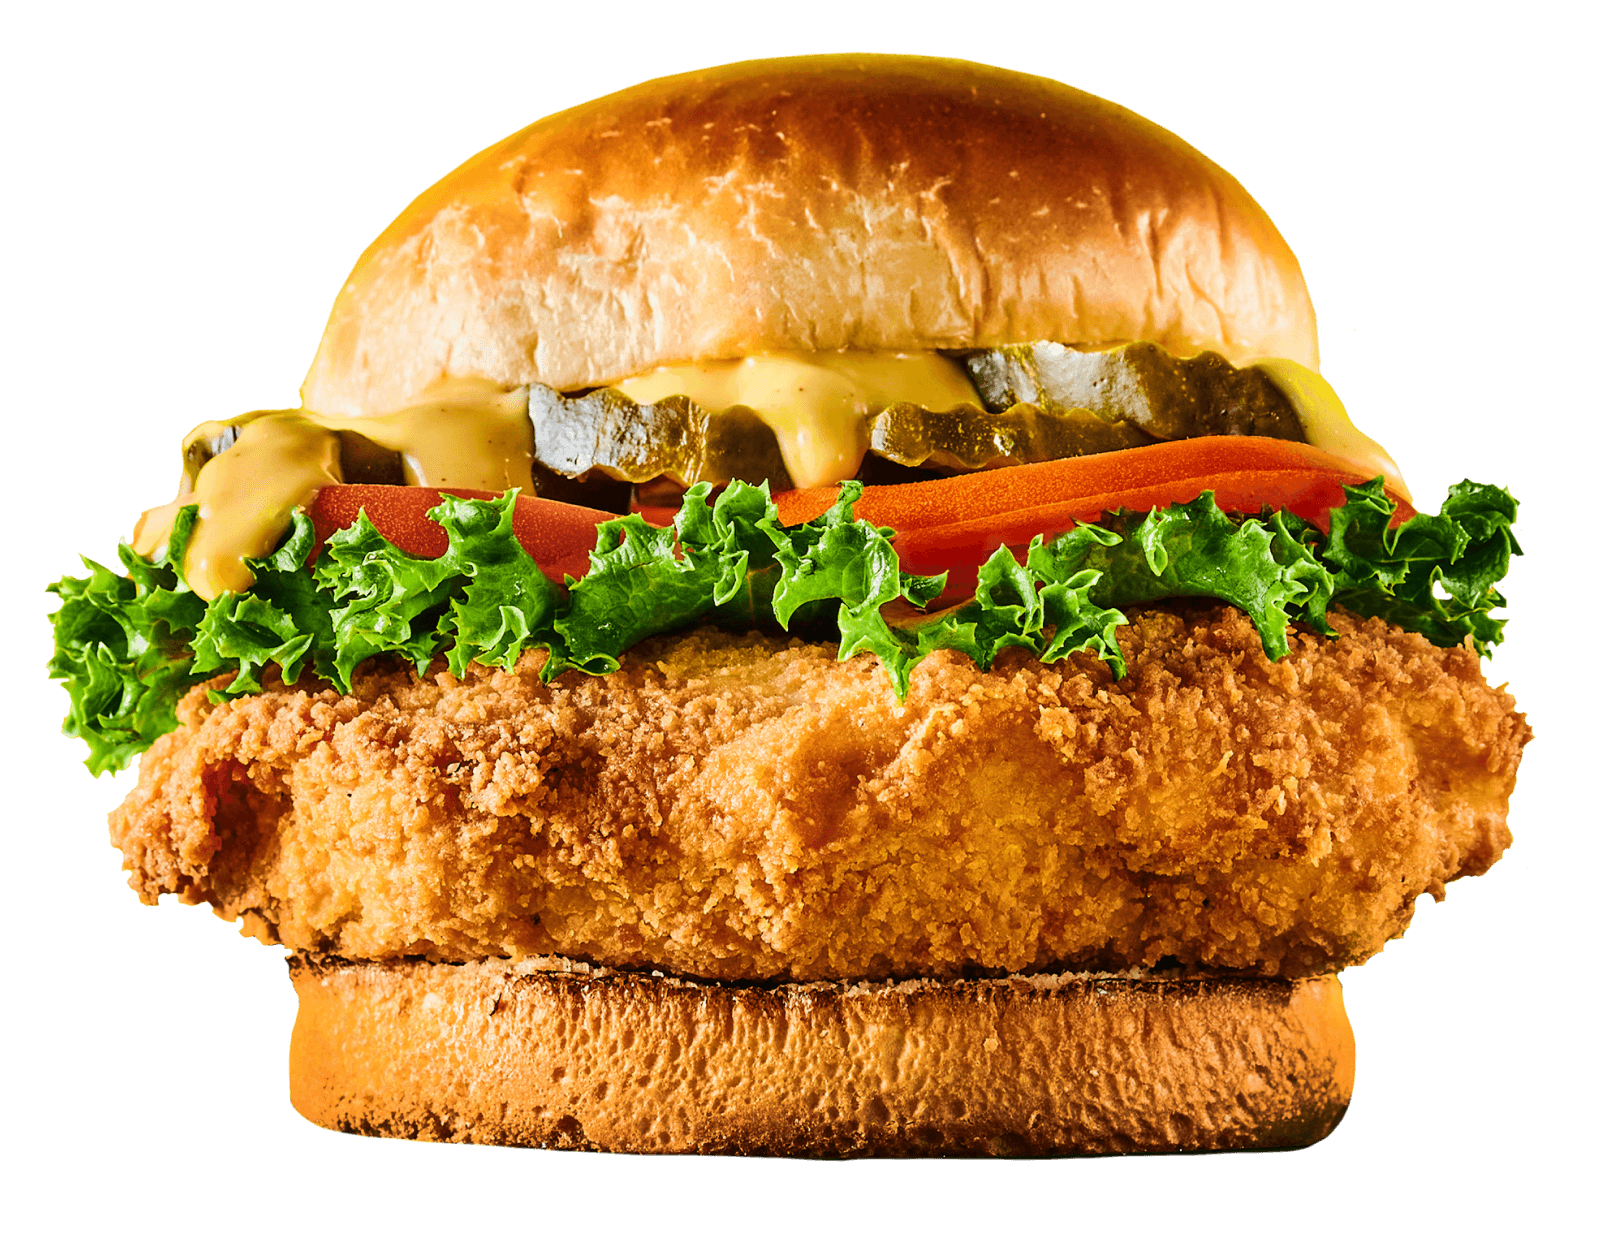 BLAZED OG FRIED CHICKEN SANDWICH - Spicy battered fried chicken topped with fresh lettuce, sliced tomato, bread & butter pickles, and honey mustard on a fat brioche bun --- by HotBox by Wiz Khalifa